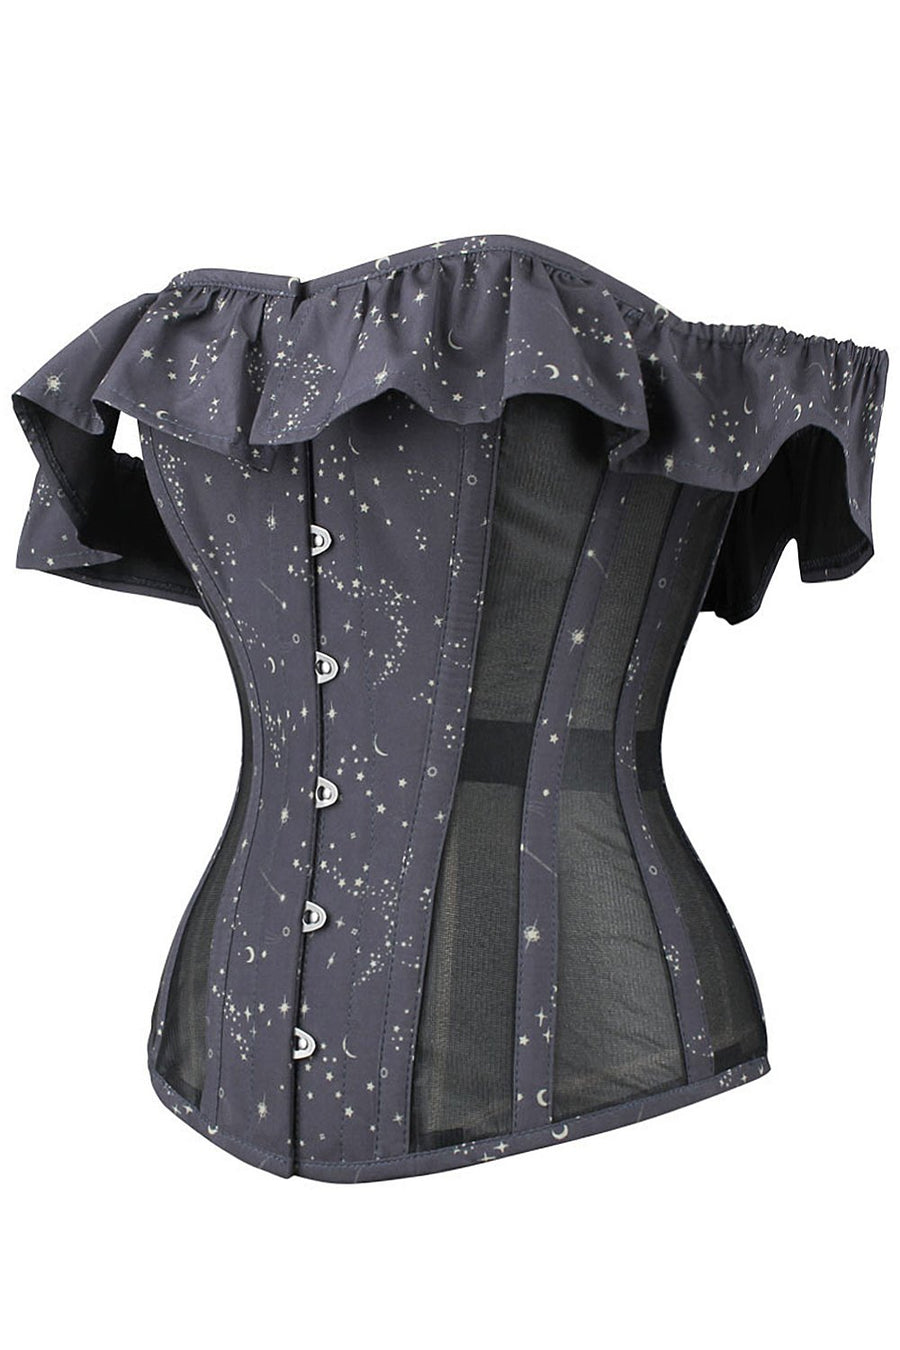 Astronomy Cotton Print Overbust With Mesh Panels And Sleeves